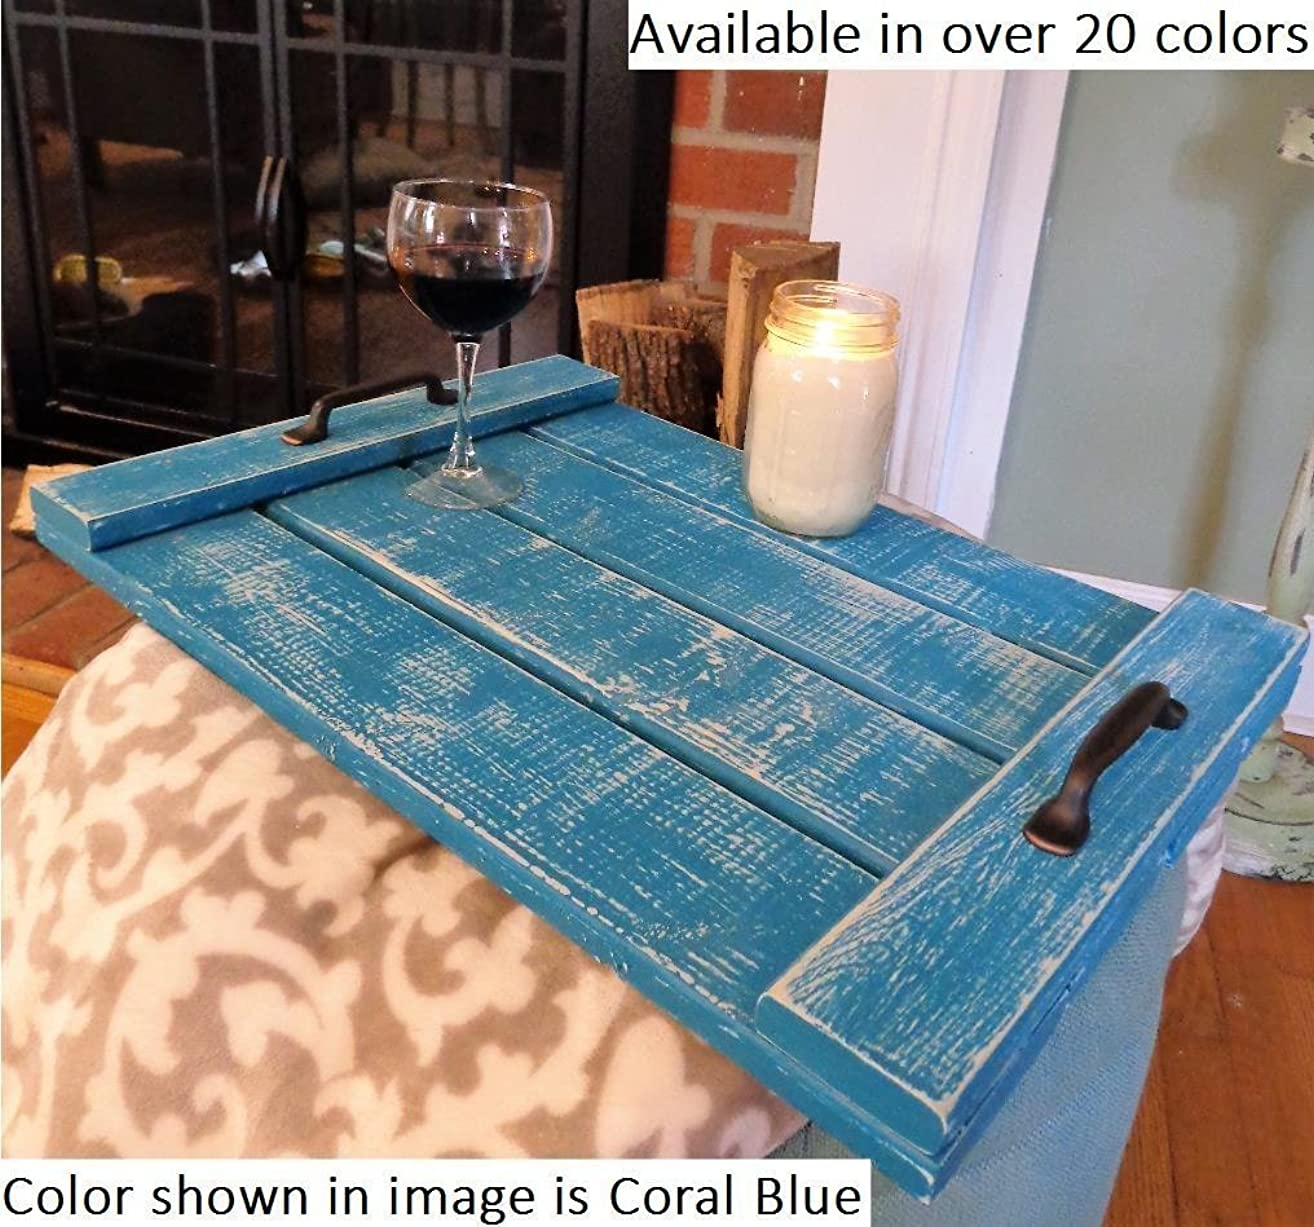 Renewed Decor Farmhouse Serving Tray in 20 colors - Cottage Tray - Tea Tray - Coffee Table Tray - Ottoman Tray - Breakfast in bed Tray - Wooden Tray - Rustic Tray